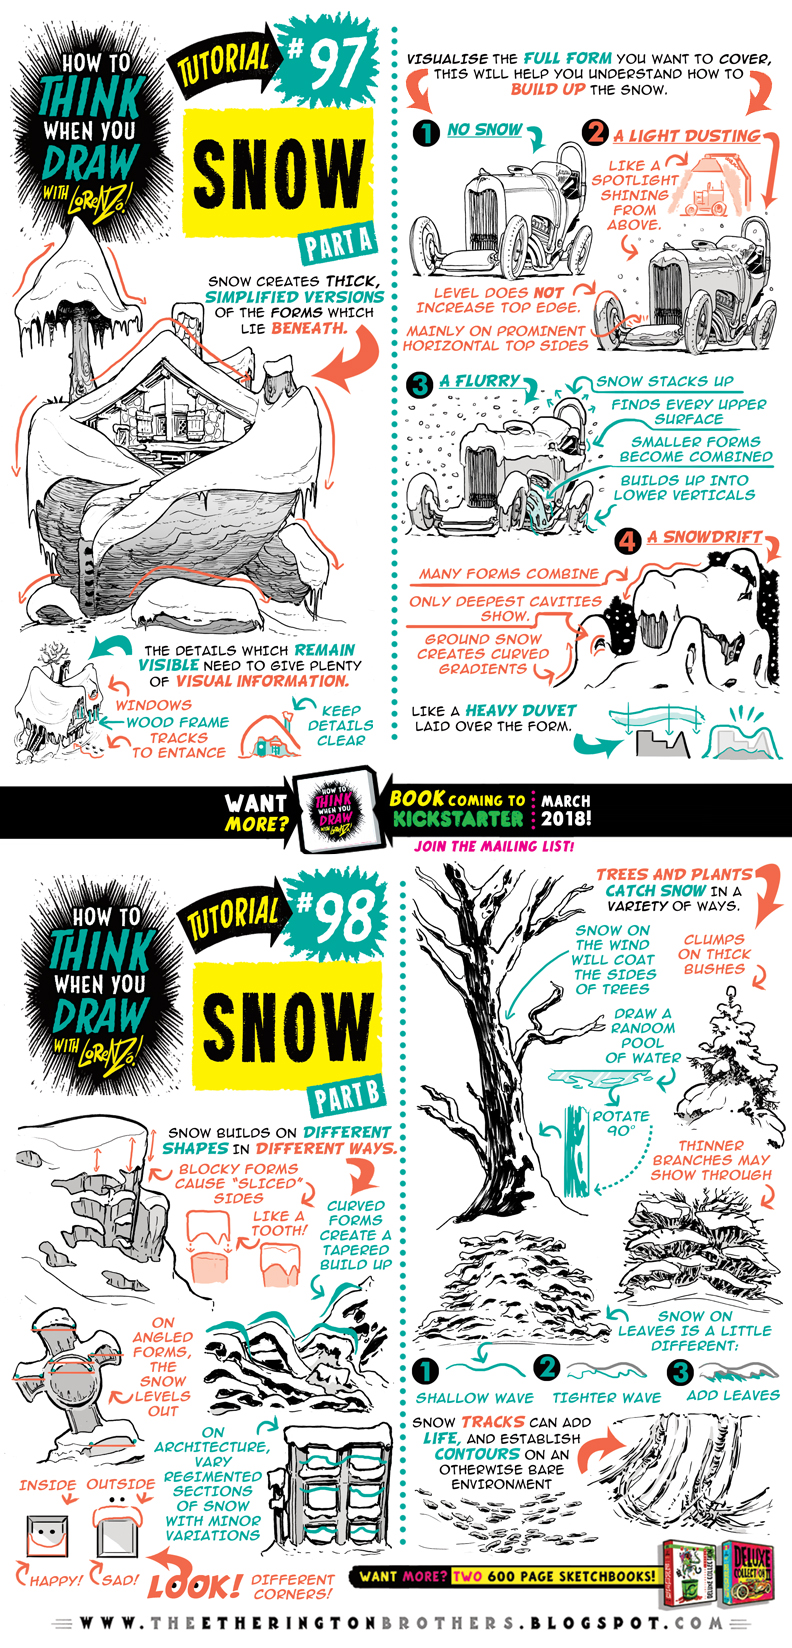 How to draw SNOW tutorial by STUDIOBLINKTWICE